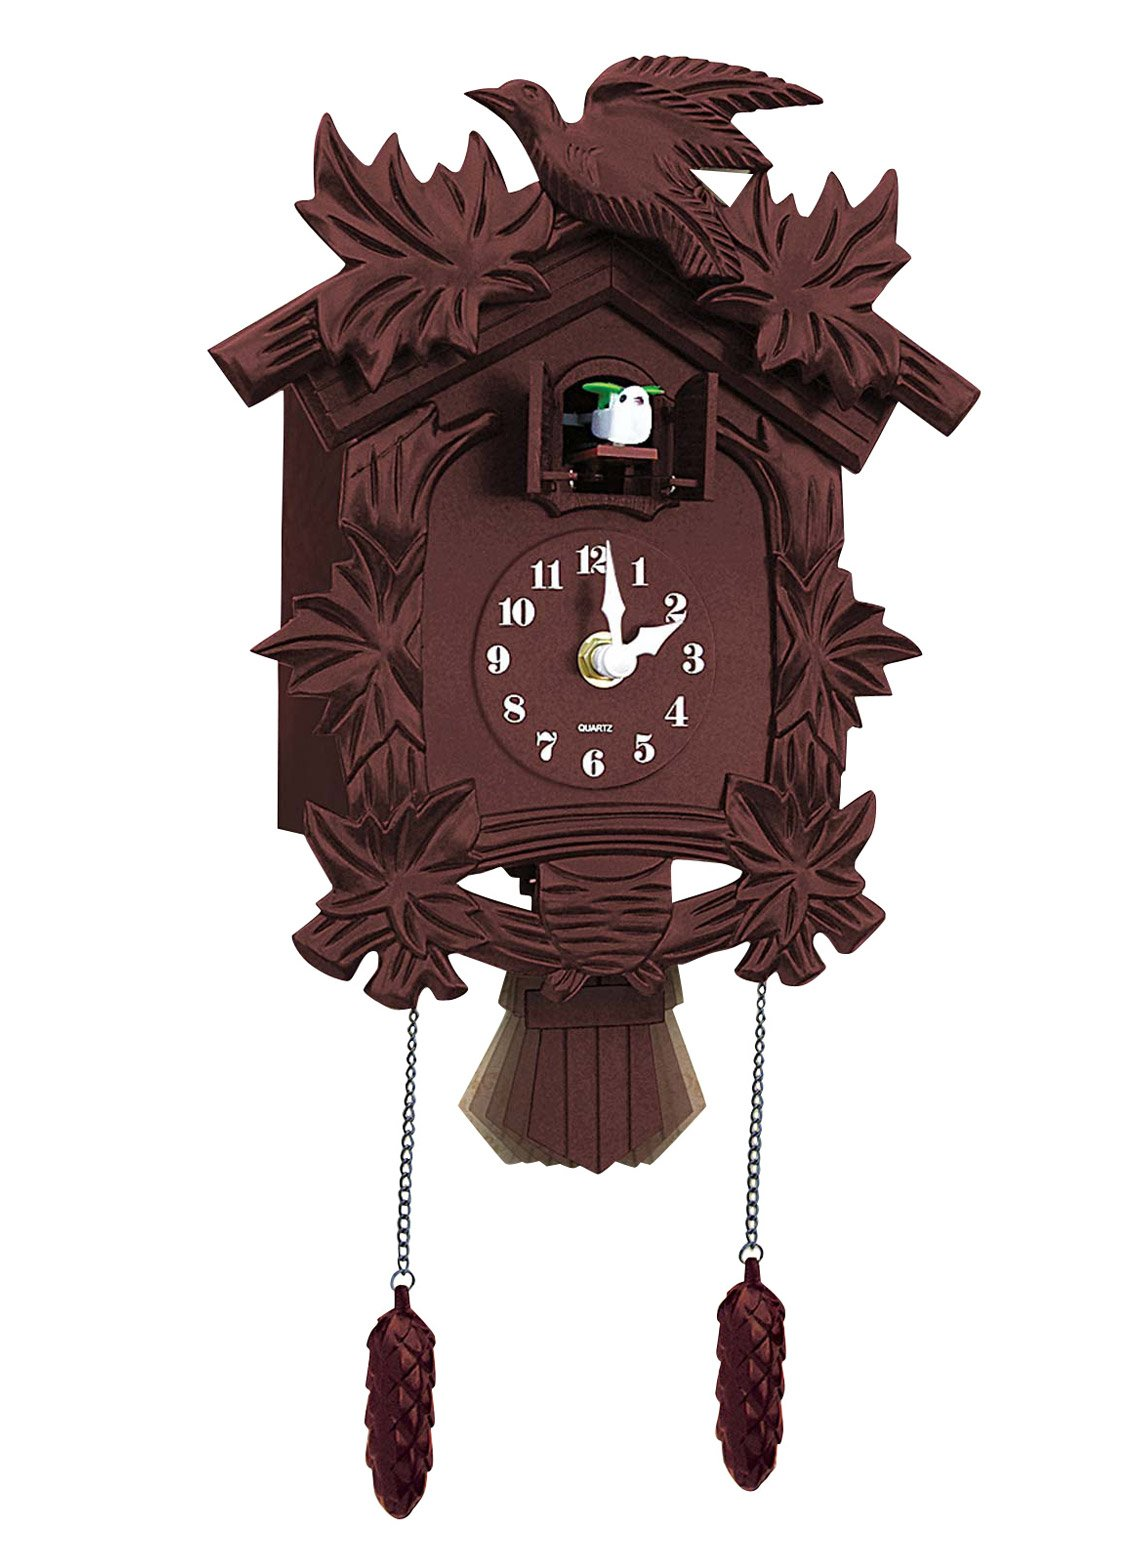 Carol Wright Gifts Newhall Old World Cuckoo Clock, Brown by Carol Wright Gifts